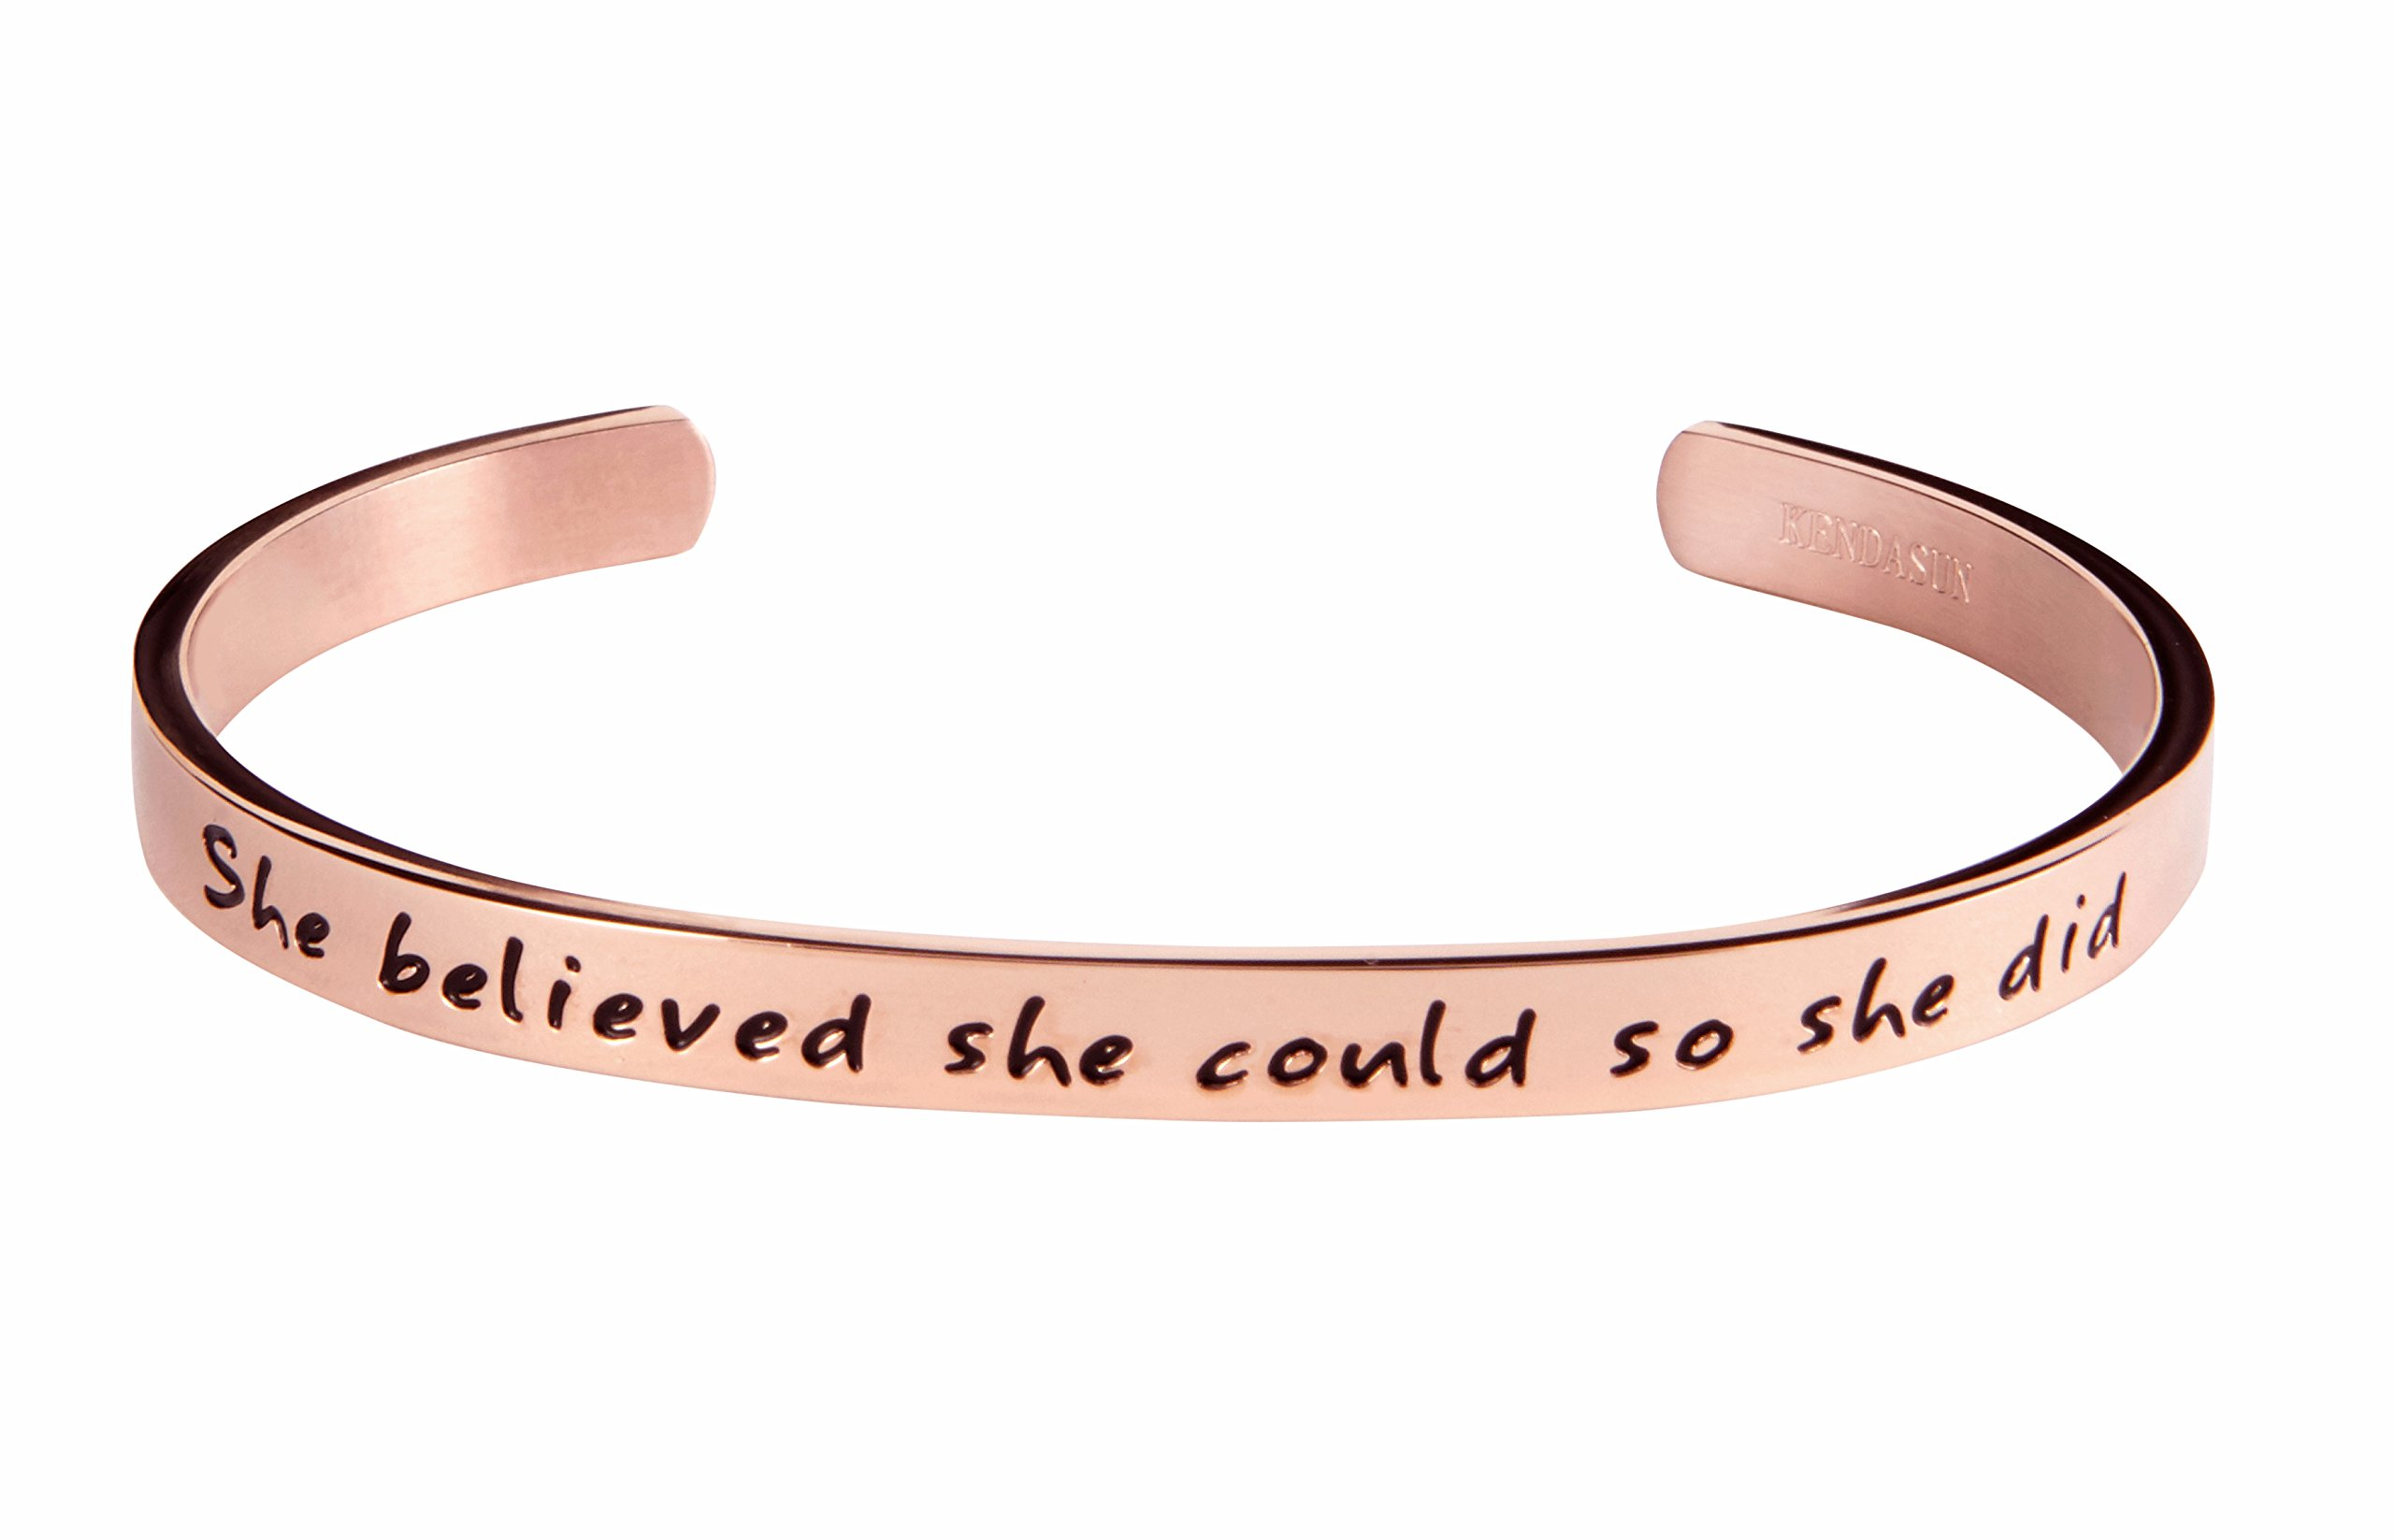 Kendasun Jewelry She believe she could so she did Inspirational Bracelet Cuff Bangle (Pink RoseGold (standard size))